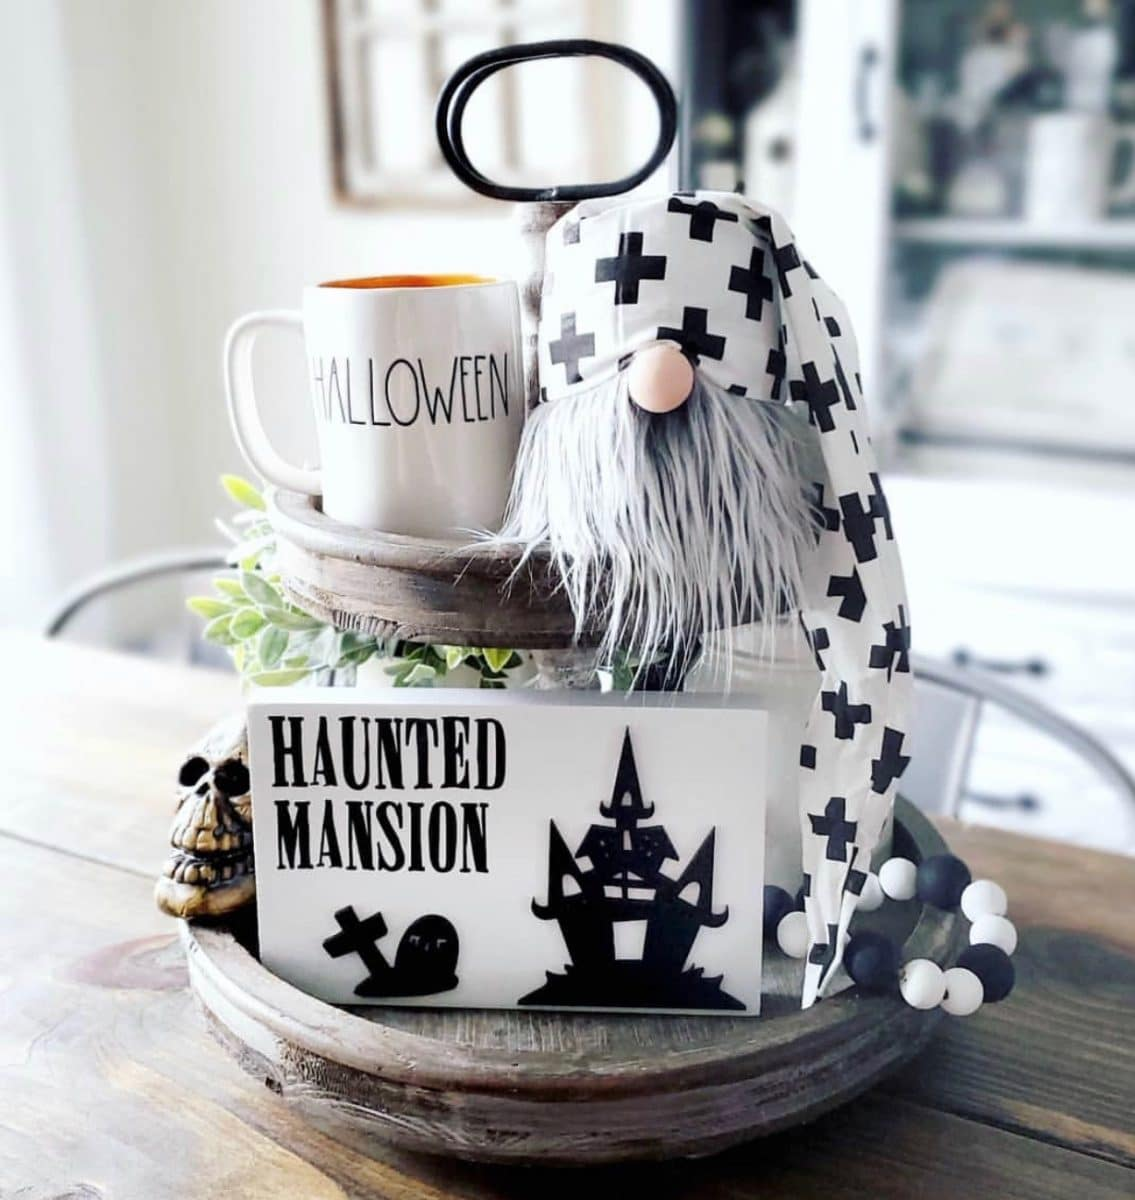 Halloween tiered tray ideas for home.  Gnome, Halloween Rae Dunn mug, haunted mansion sign, black and white wood beads, skeleton